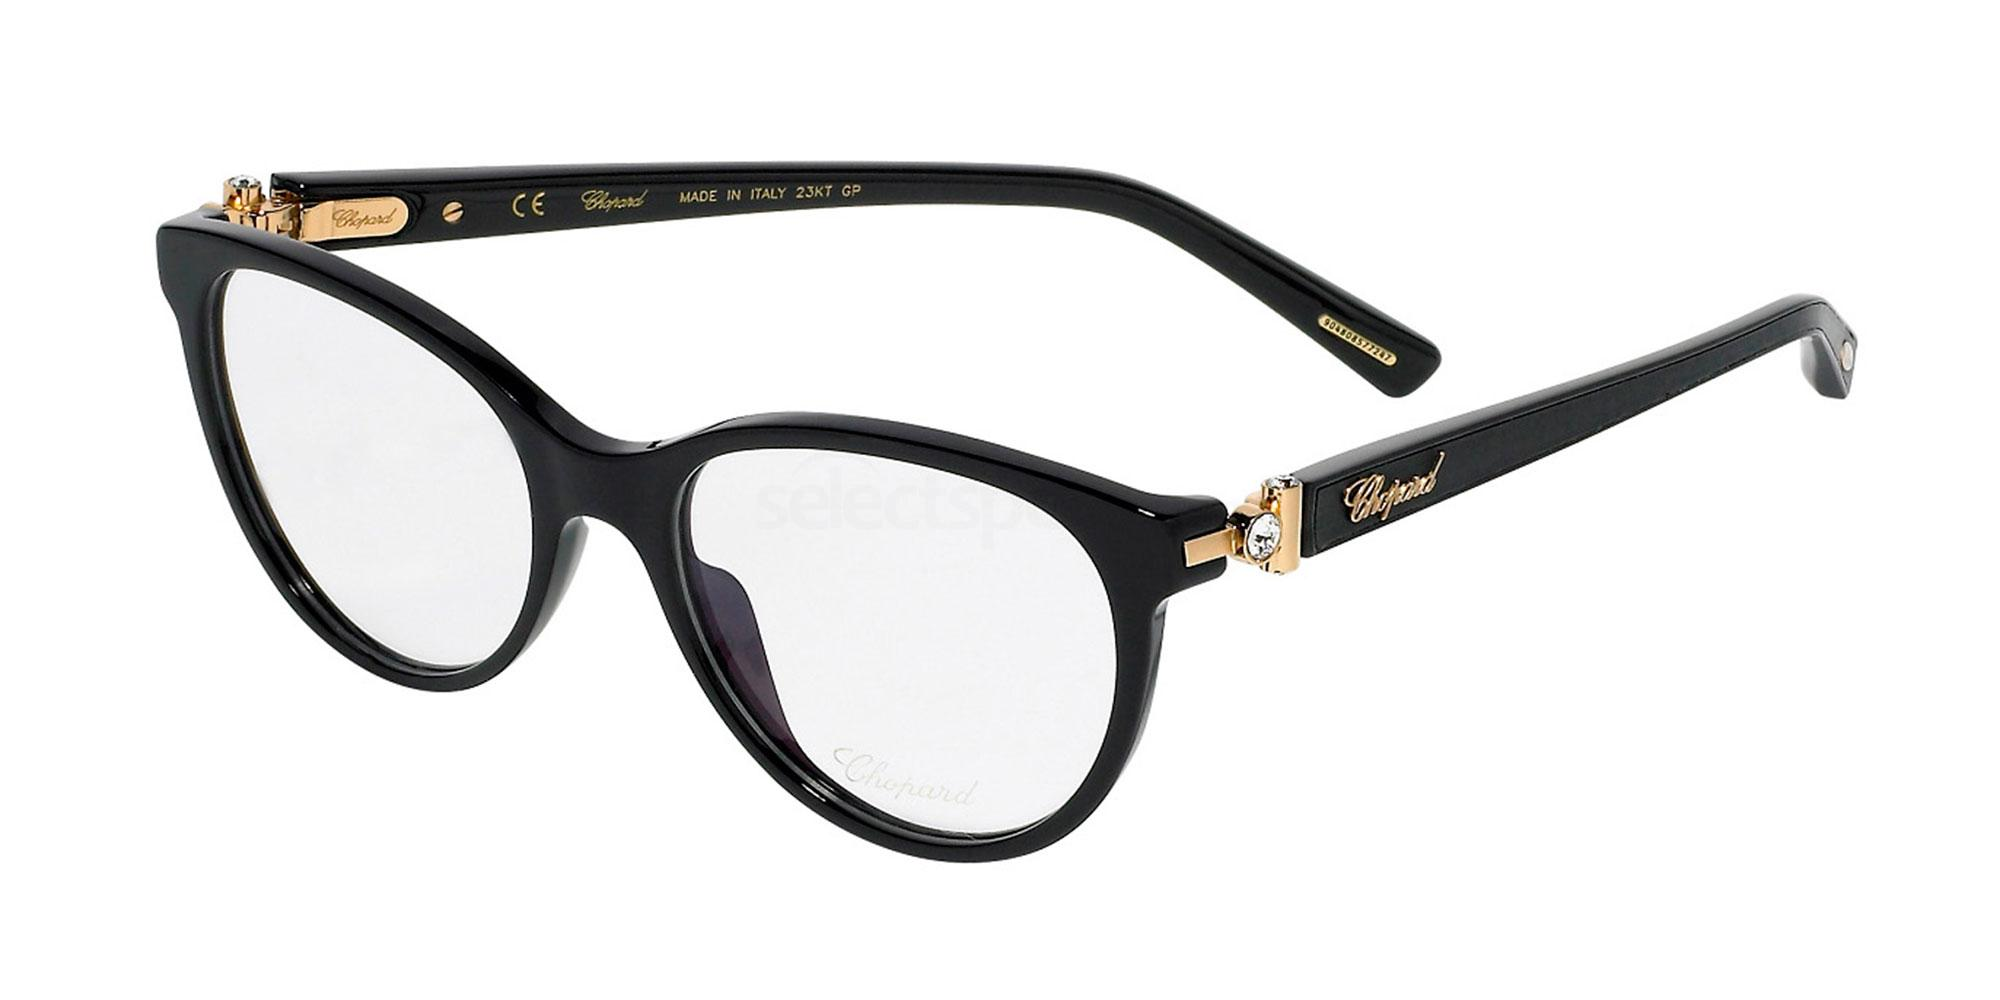 0700 VCH268S Glasses, Chopard